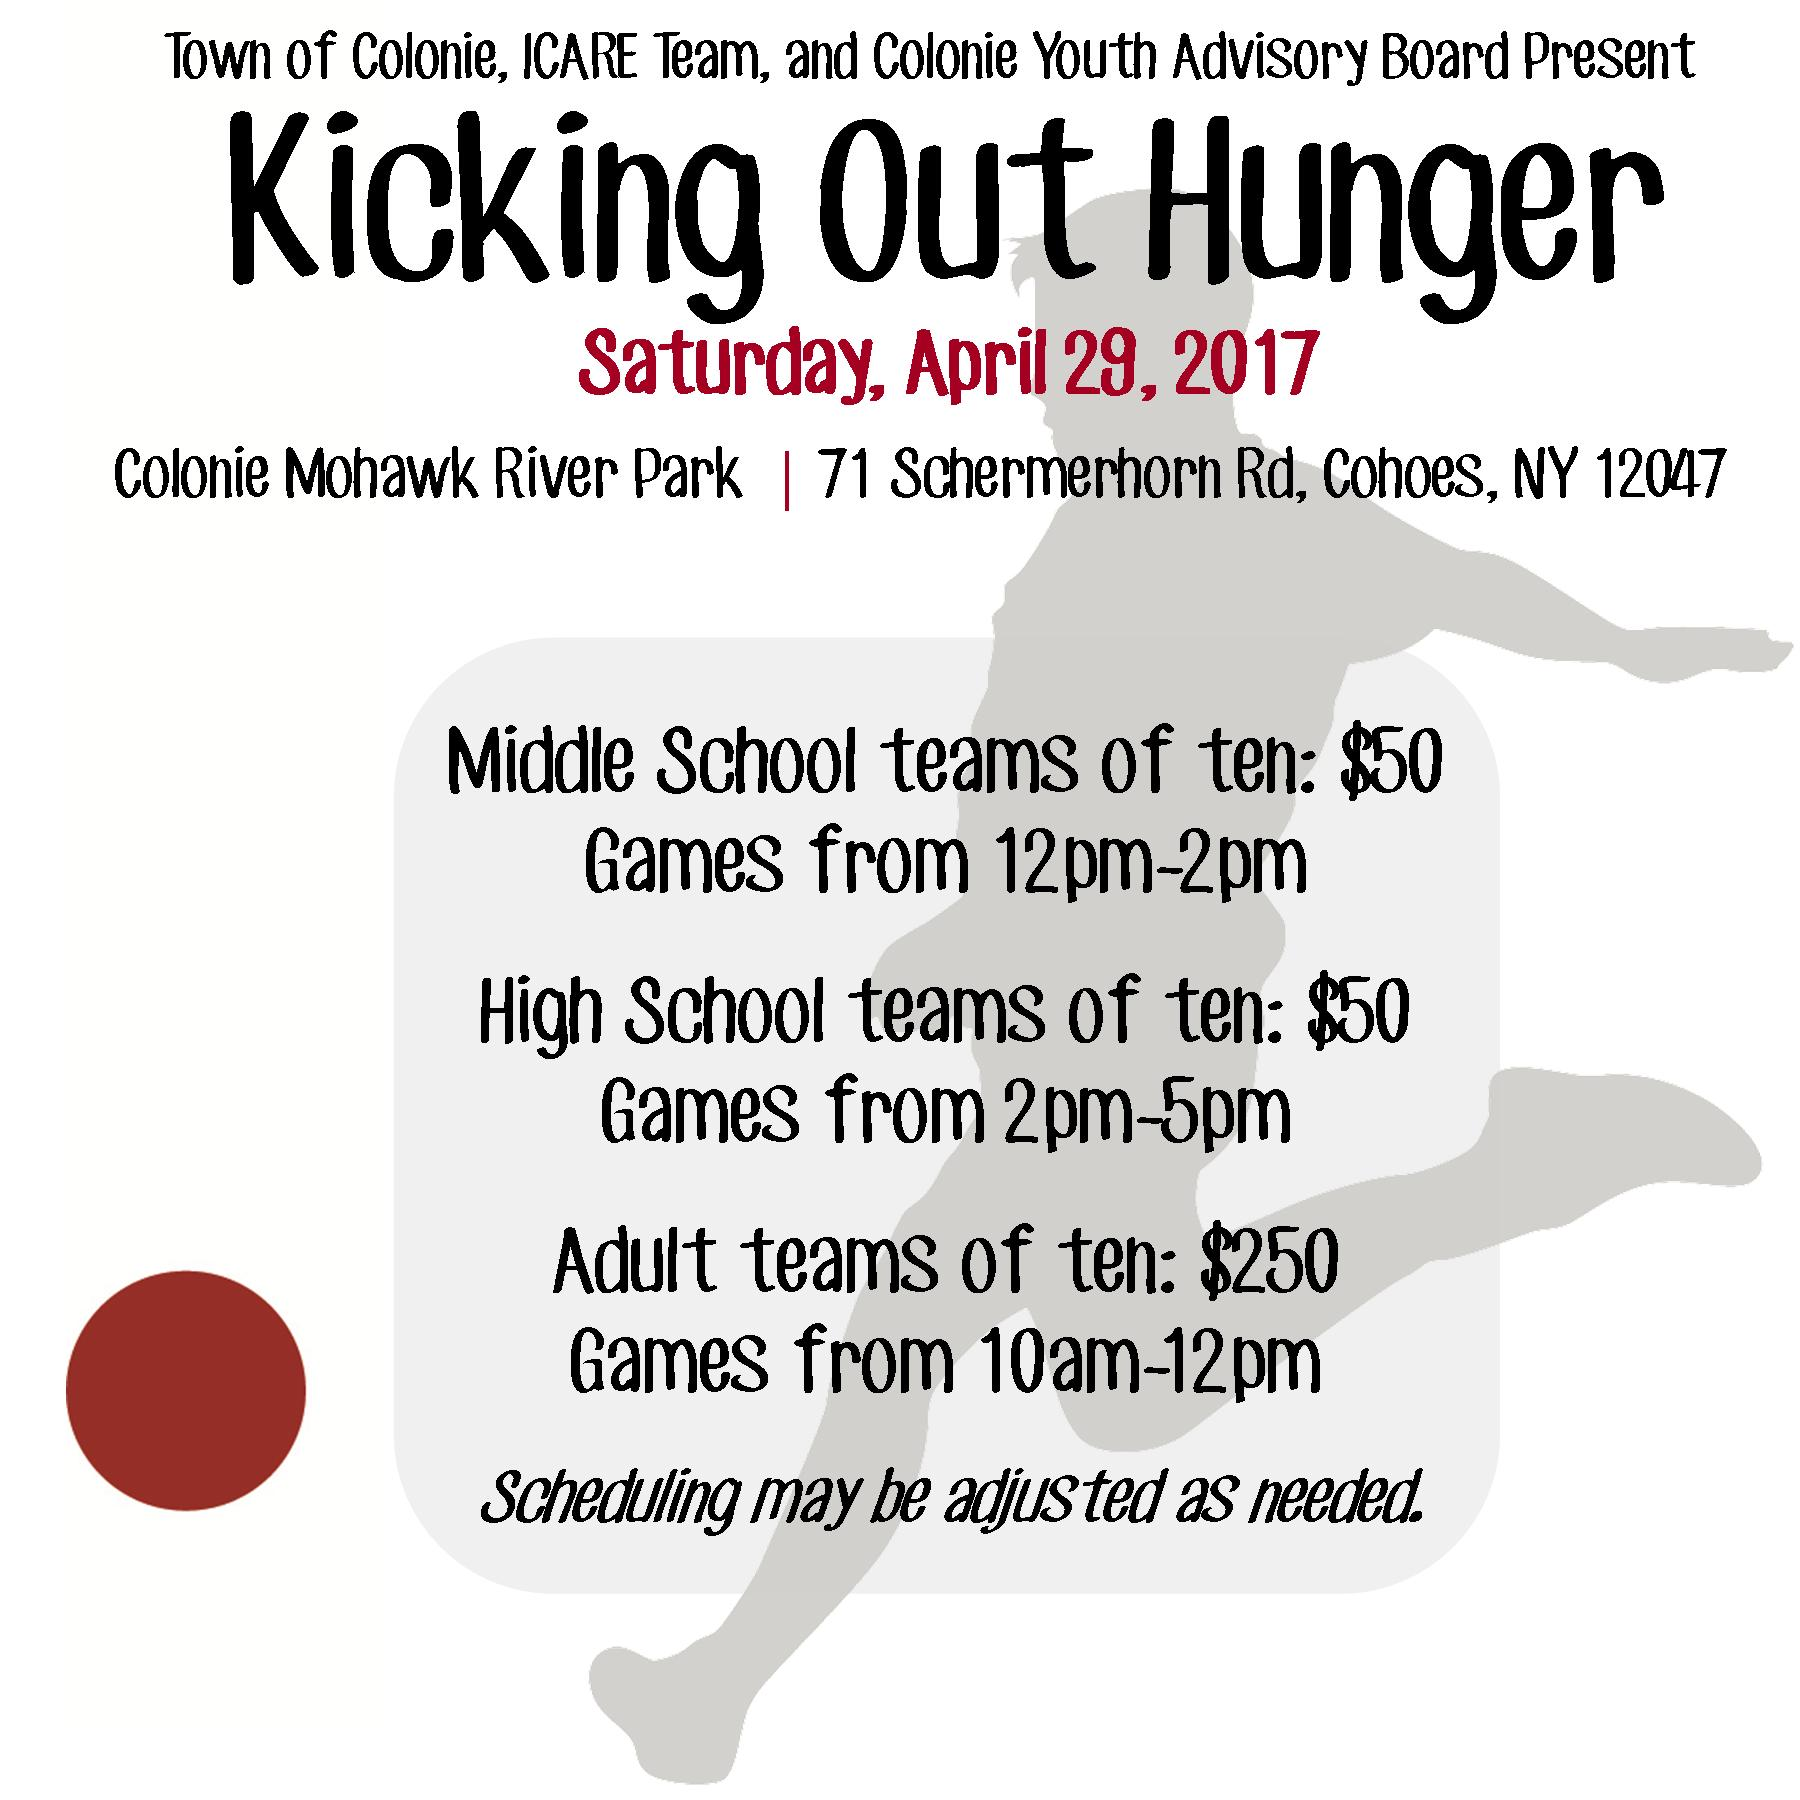 Kicking Out Hunger Photo